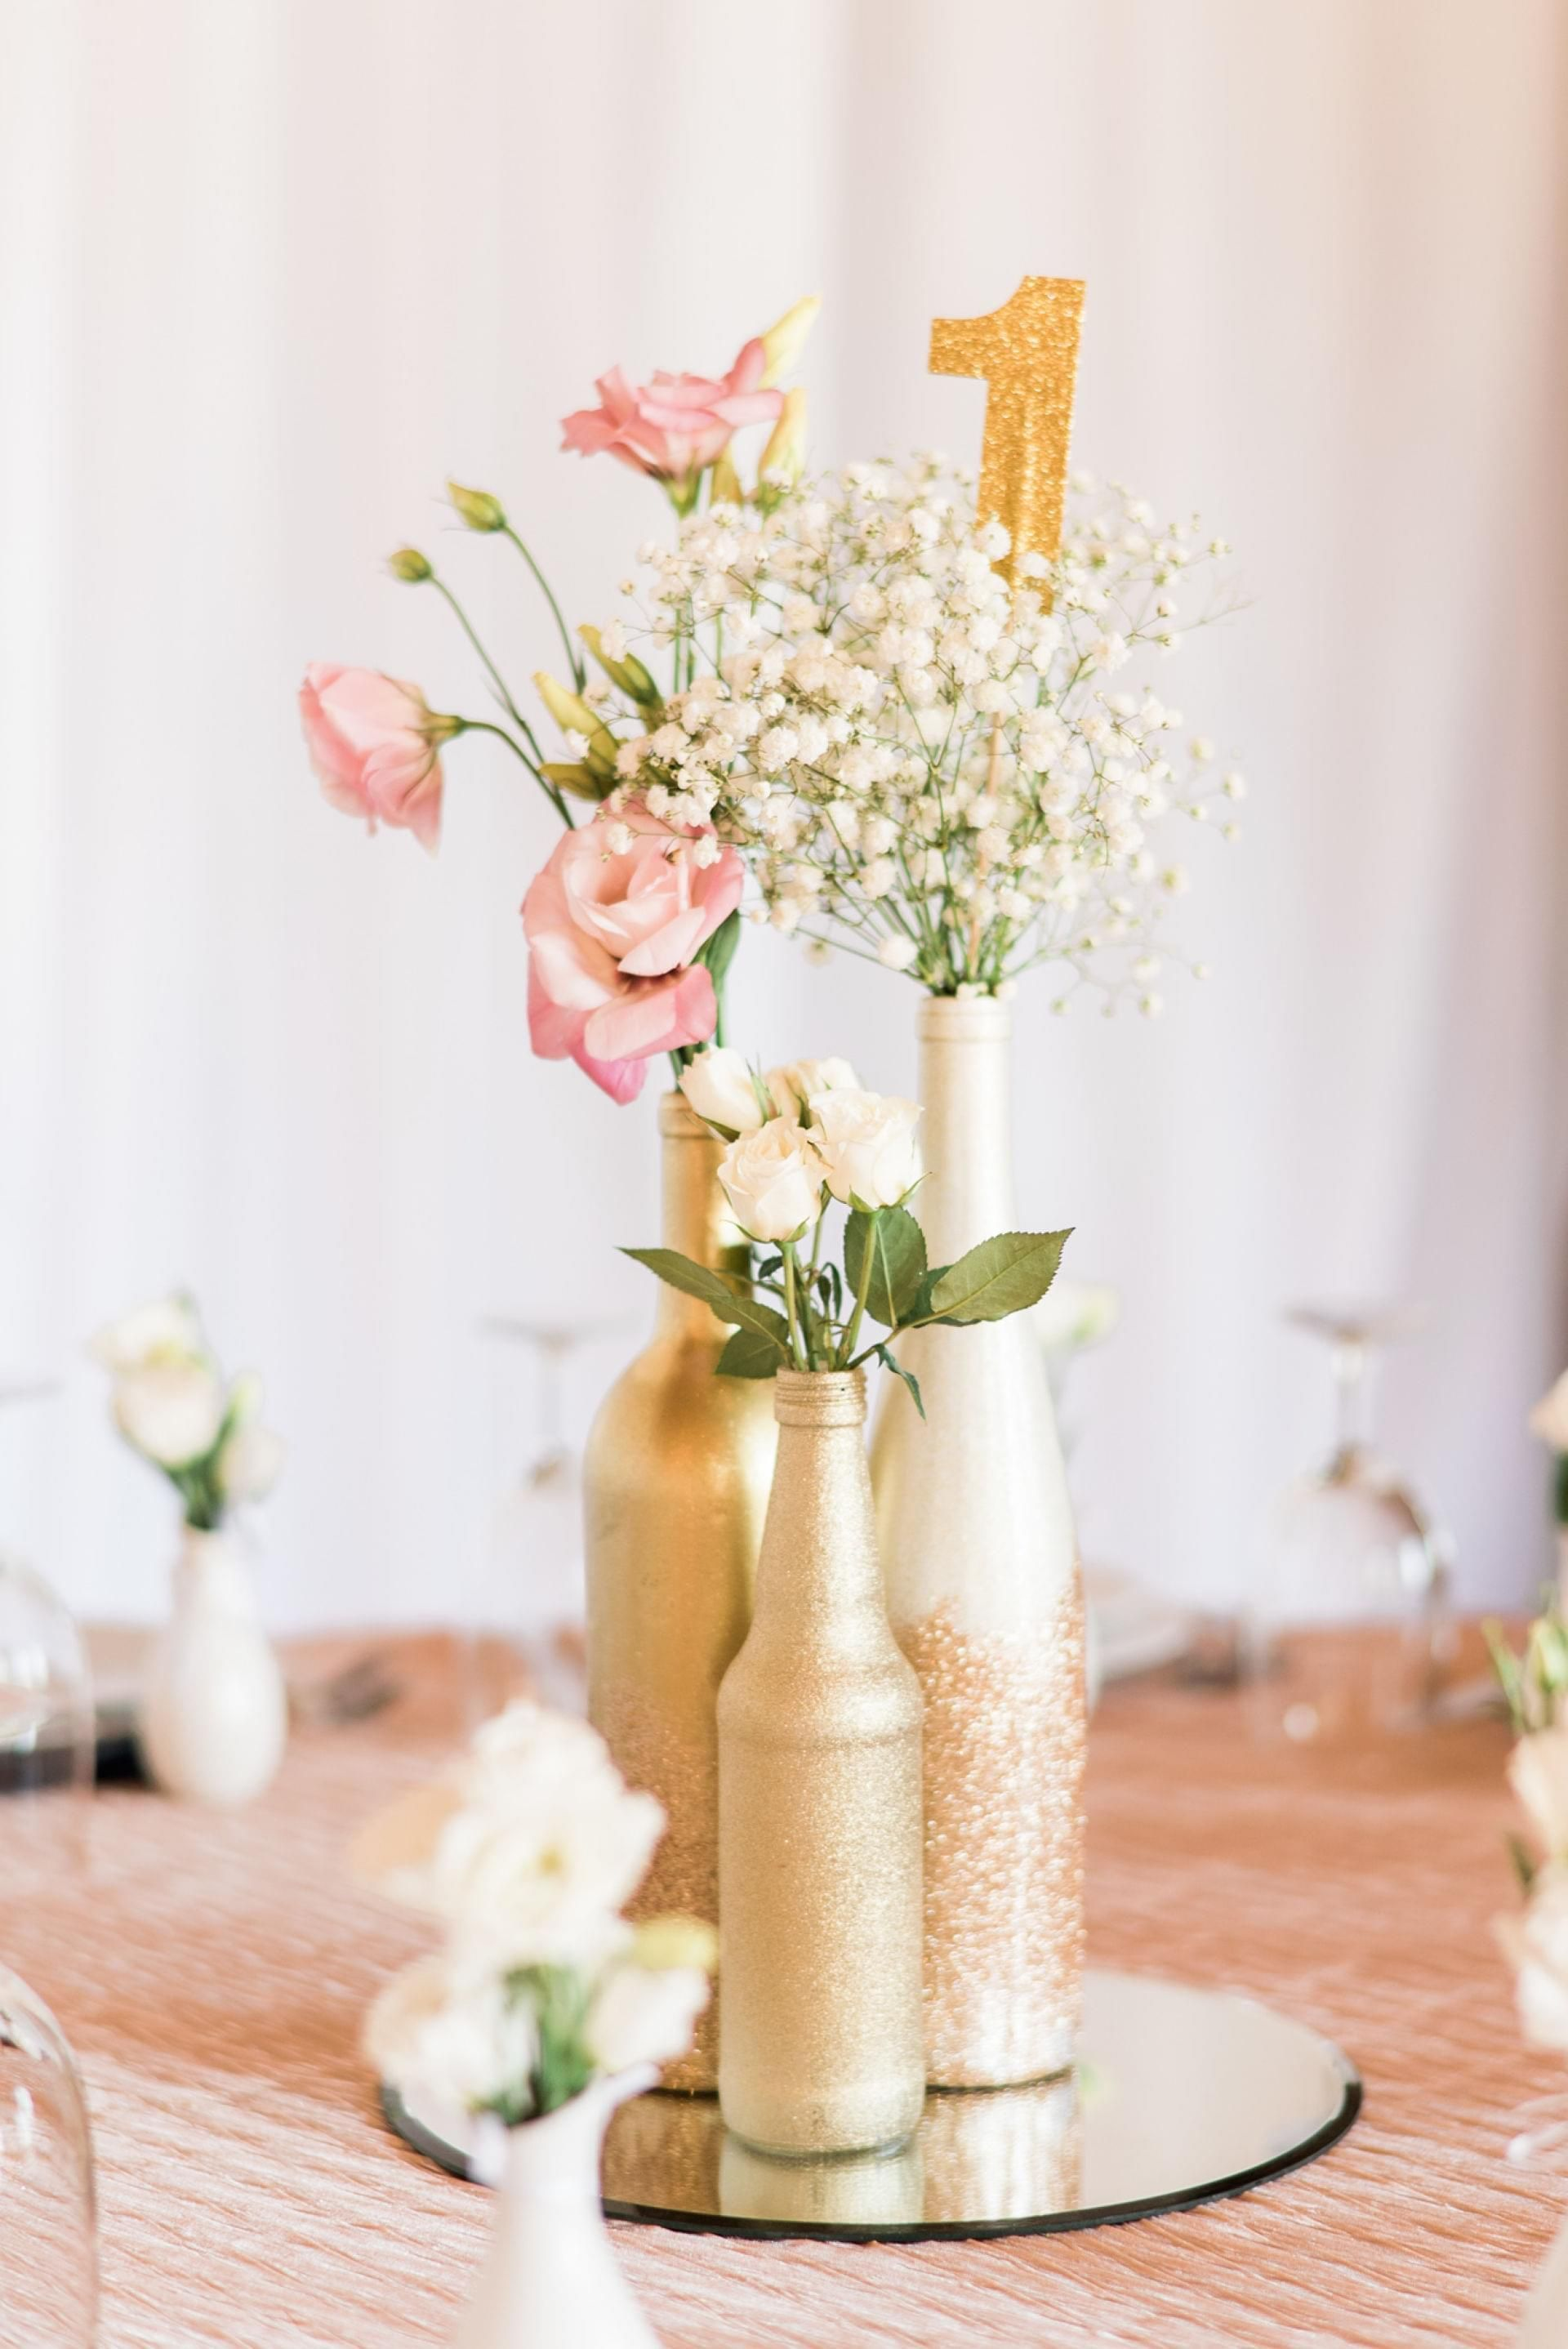 24 beautiful wine bottles centerpieces perfect for every desk weddings diy wedding reception. Black Bedroom Furniture Sets. Home Design Ideas